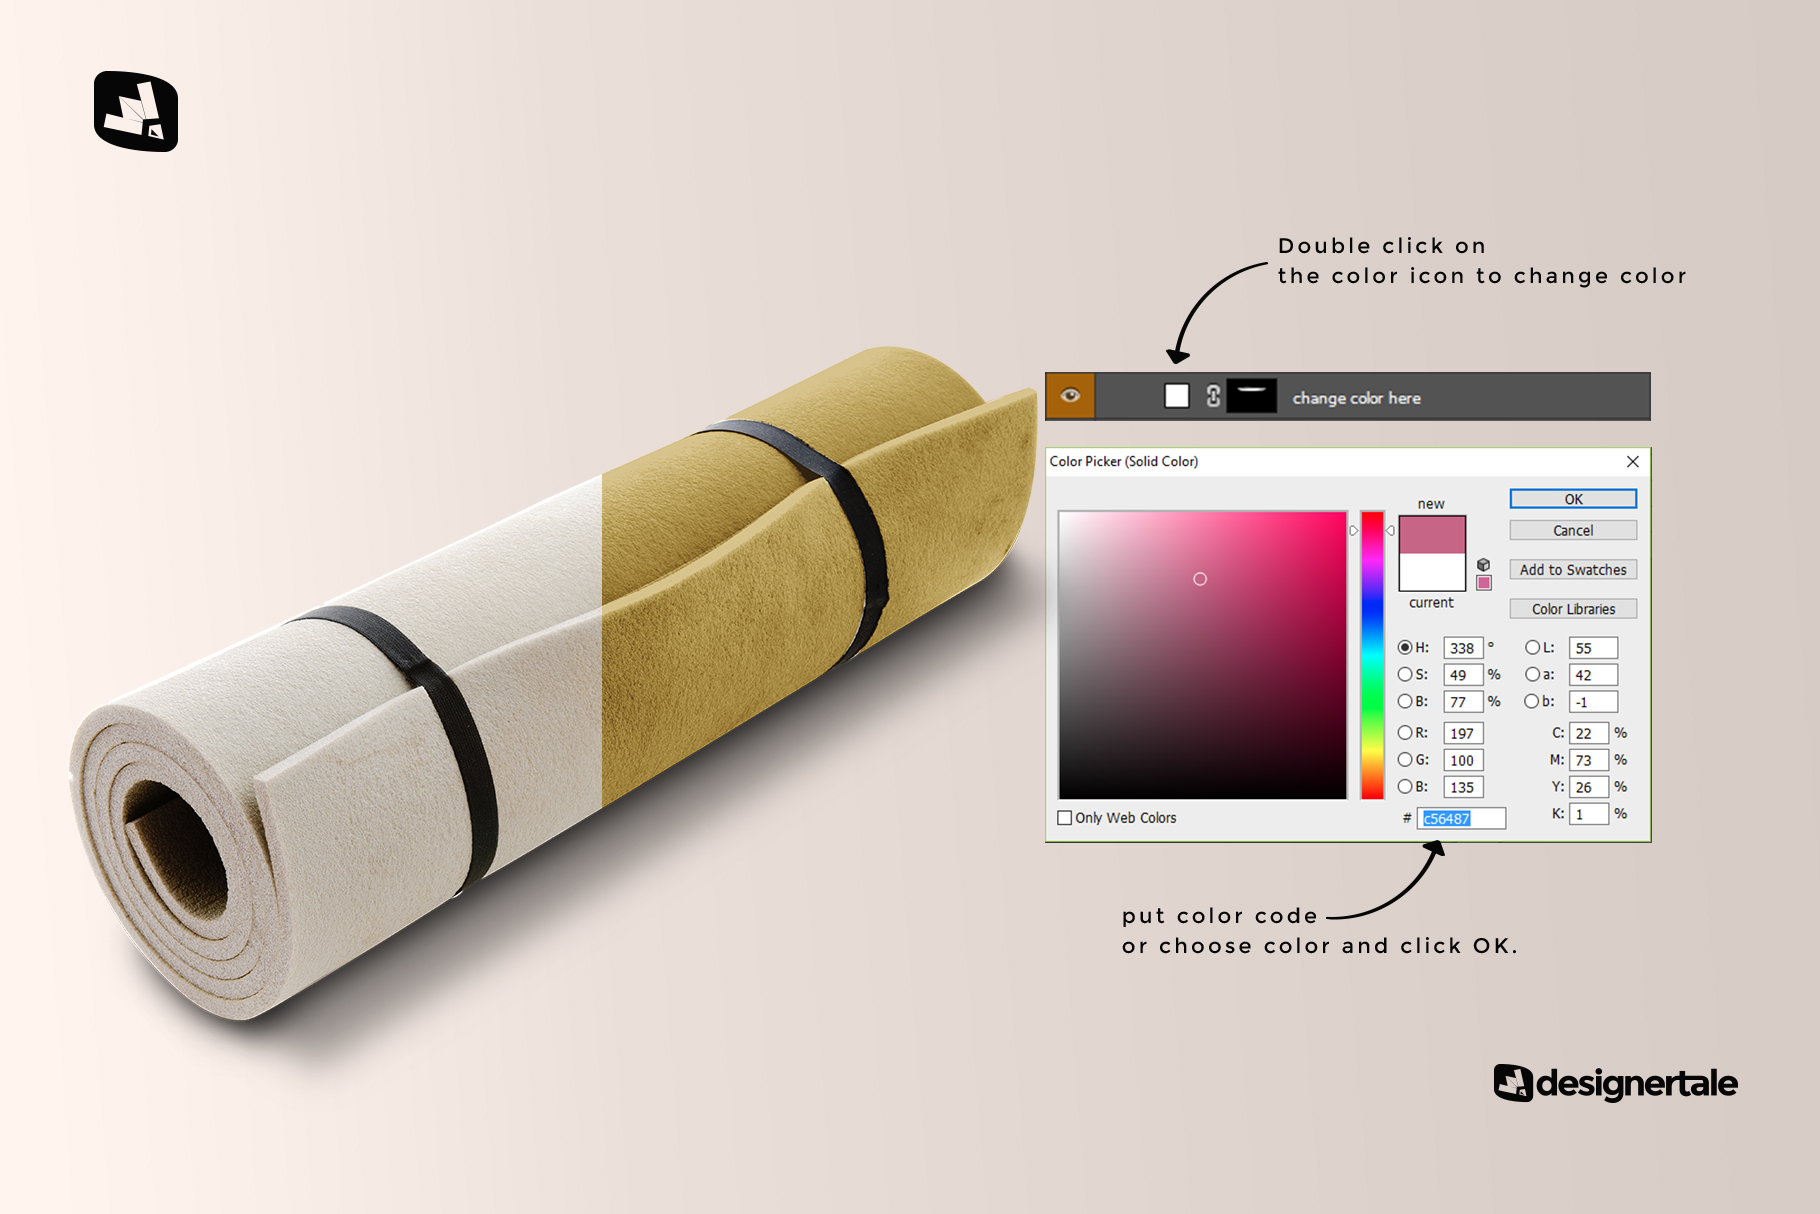 how to change color of the rolled up yoga mat set mockup